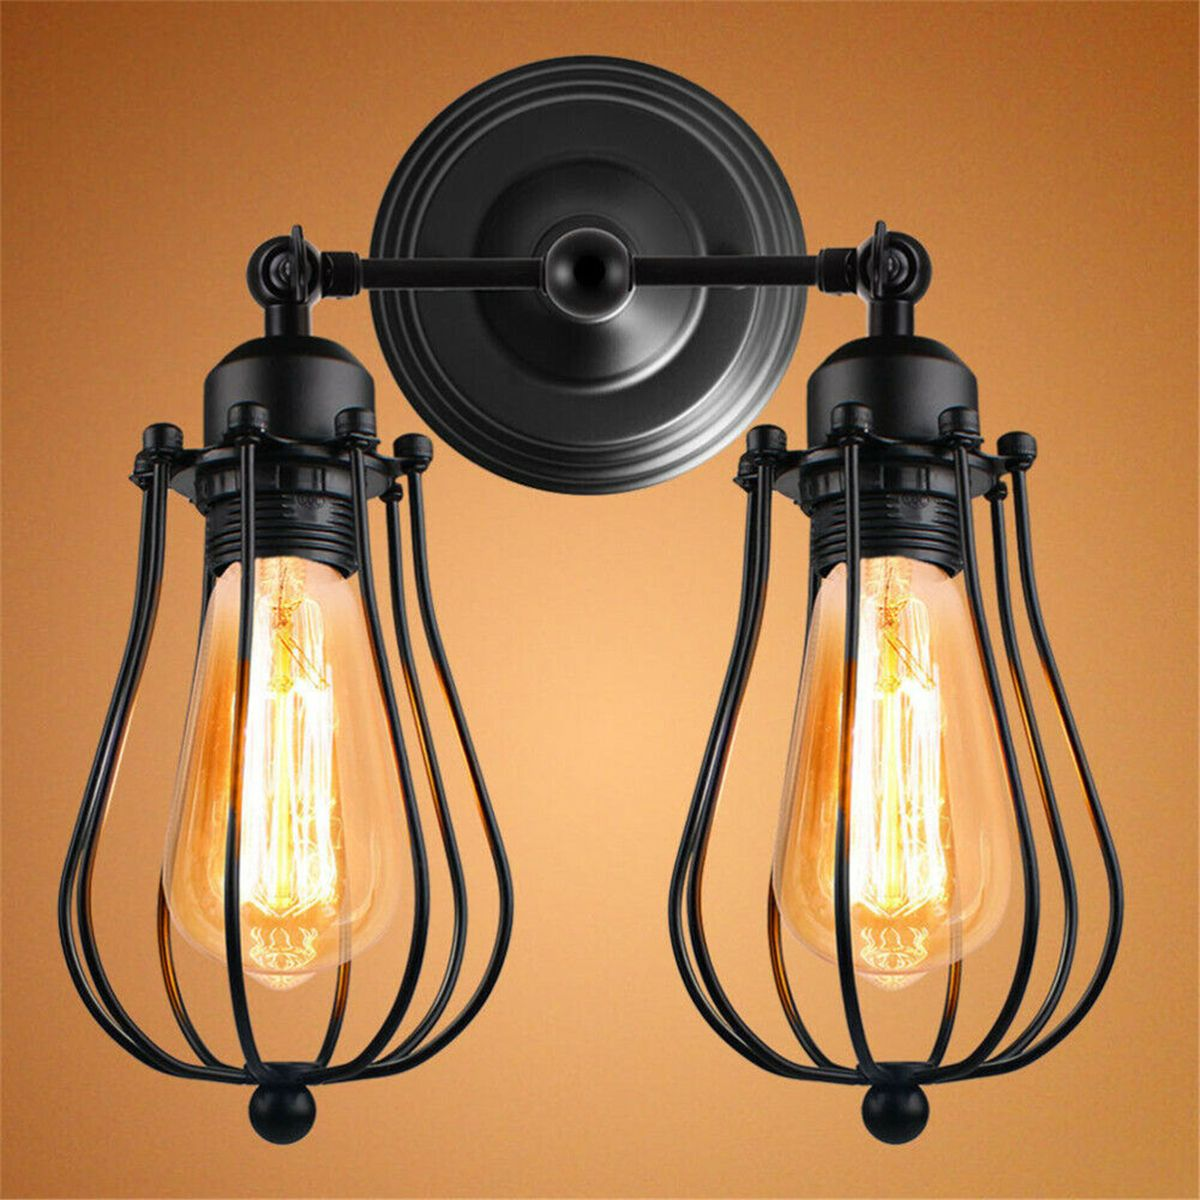 Home in 2020 Wall sconce lighting, Cage wall lights